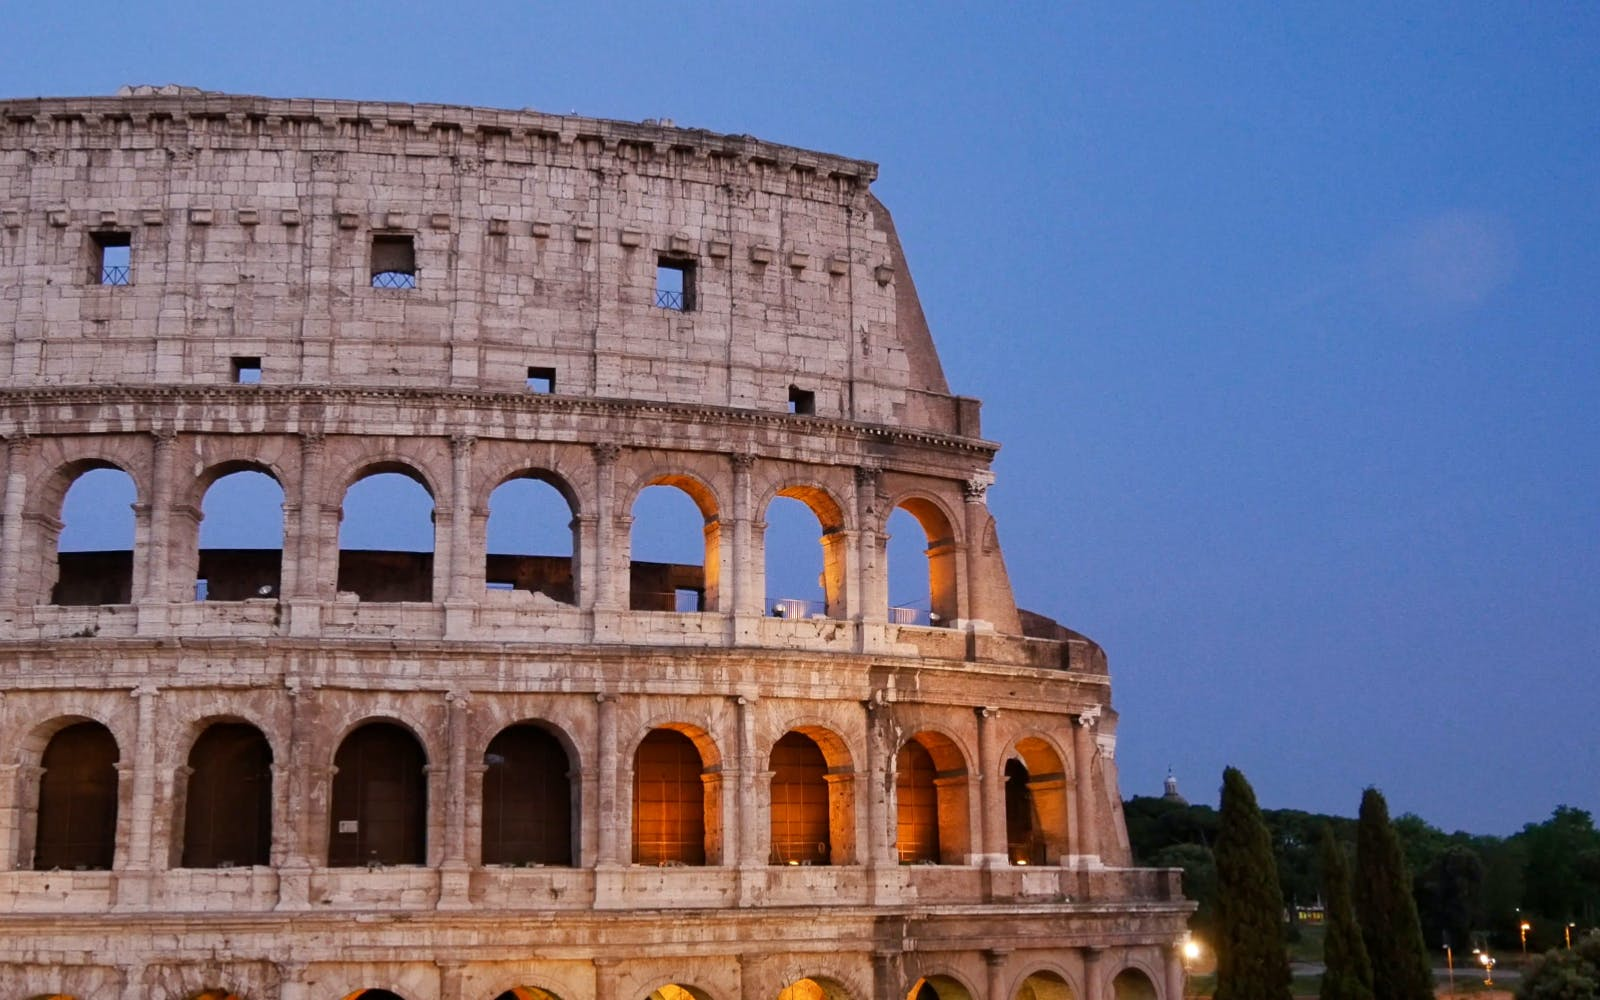 Priority Access to the Colosseum & Sightseeing Hop-On Hop-Off Bus Tour